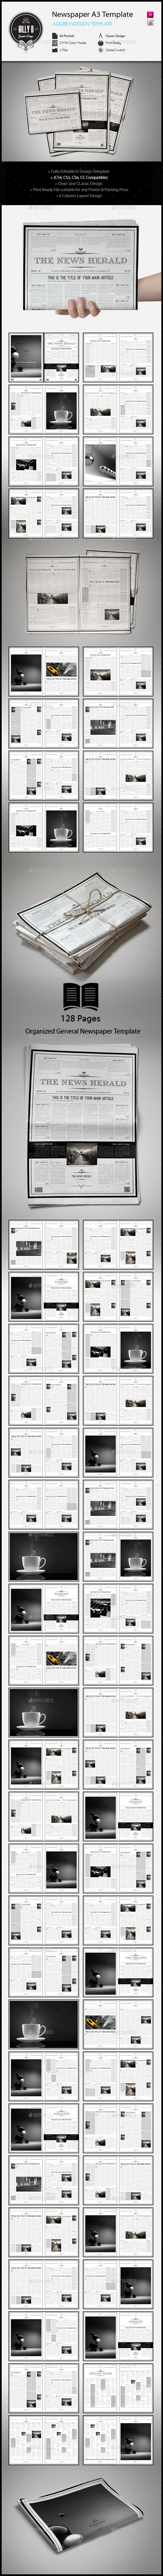 GraphicRiver Newspaper A3 Template 11372142